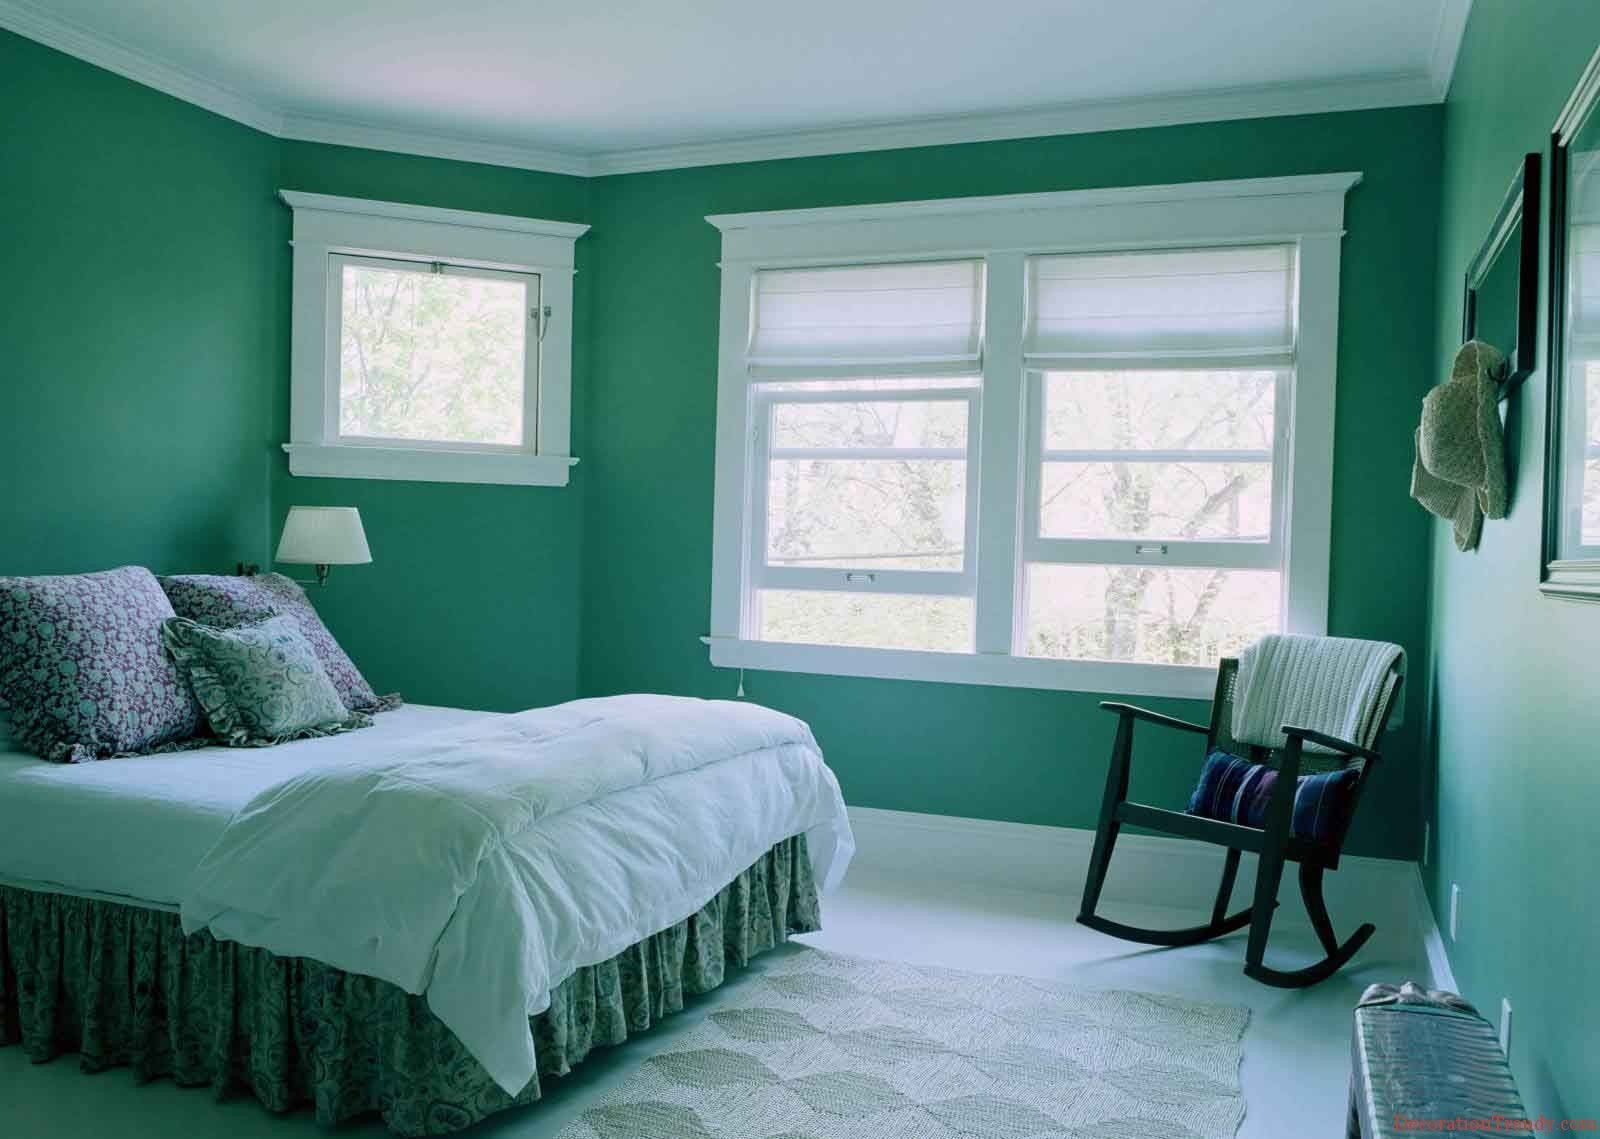 The amazing persian green bedroom color scheme with white ceiling and viridian bed remarkable bedroom